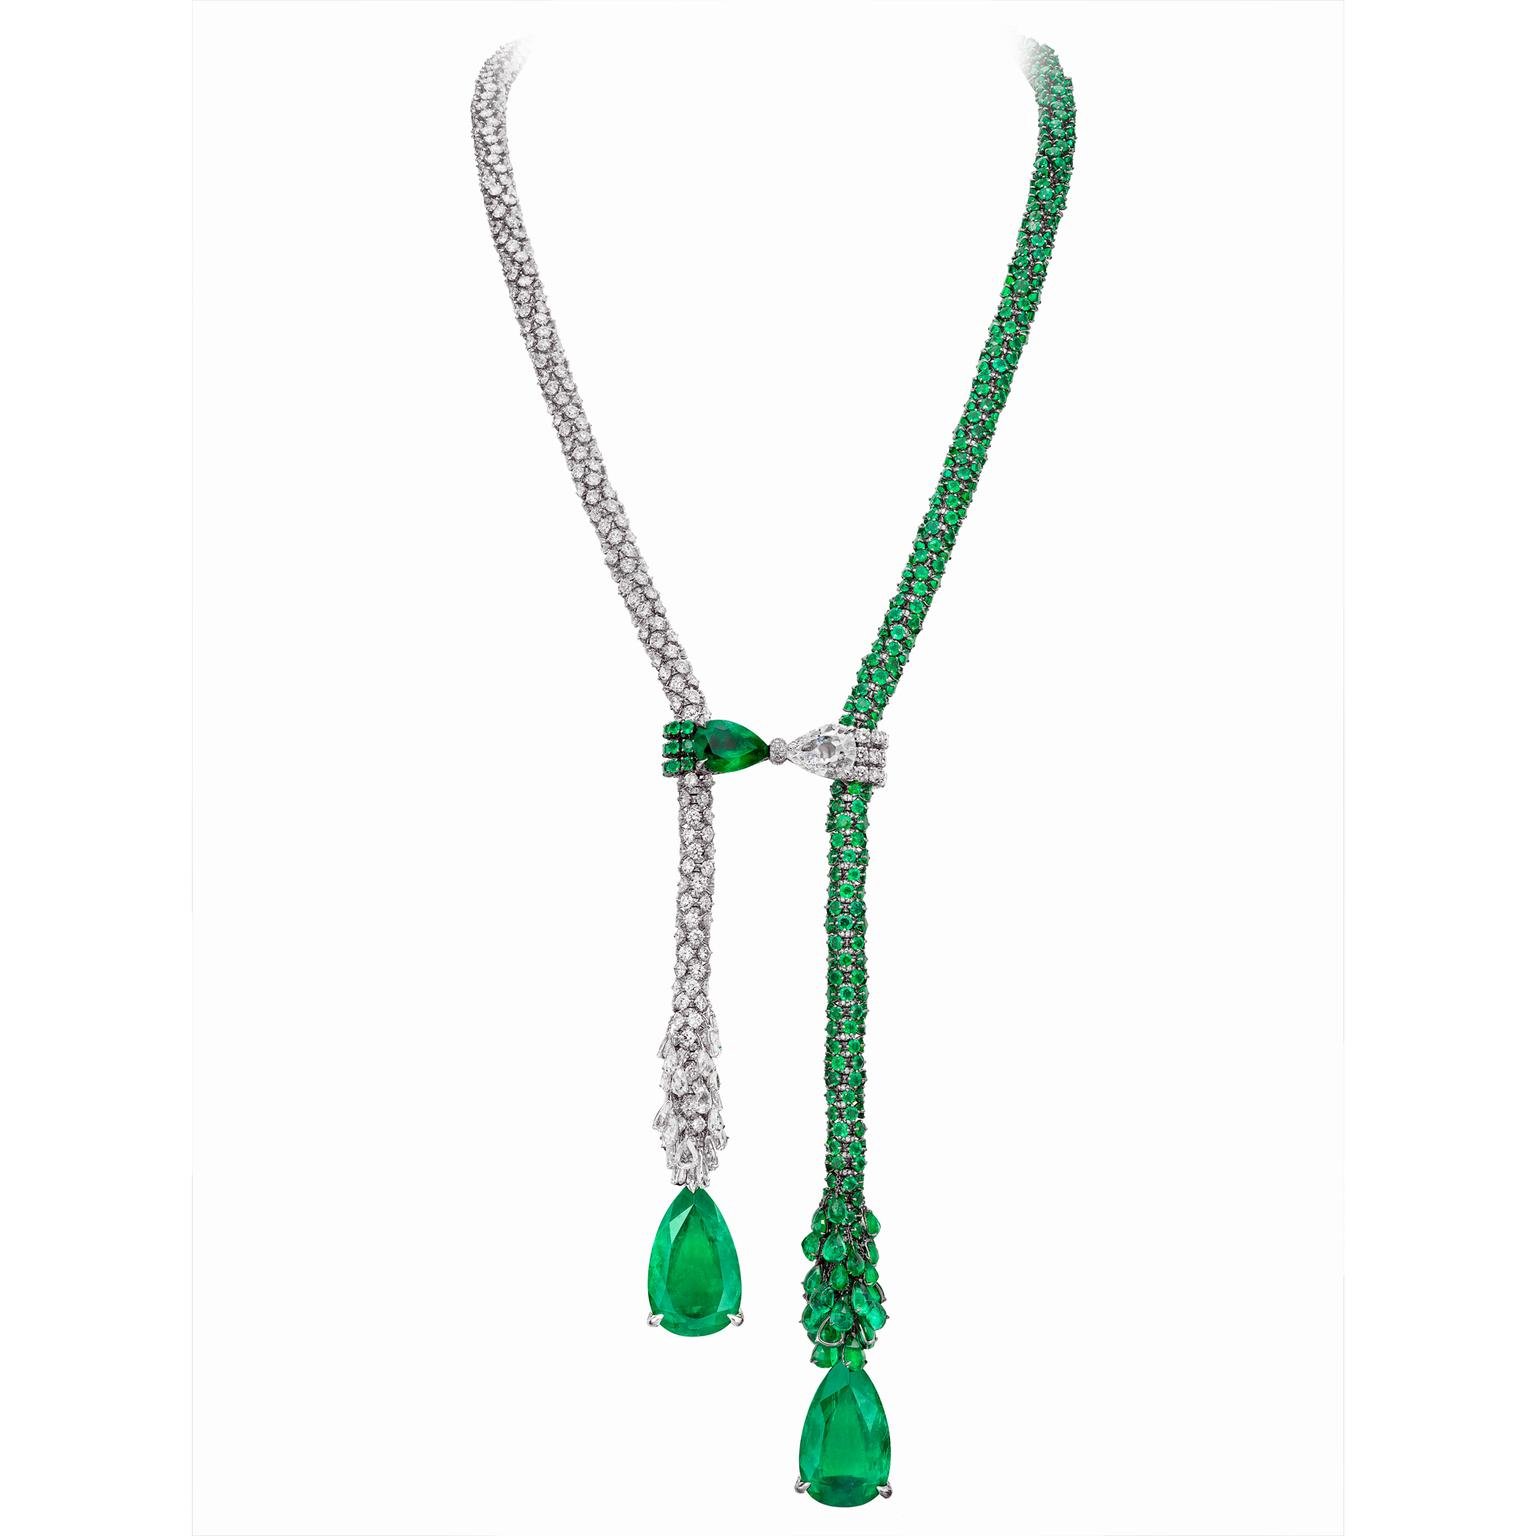 Boghossian Masterpieces diamond and emerald necklace